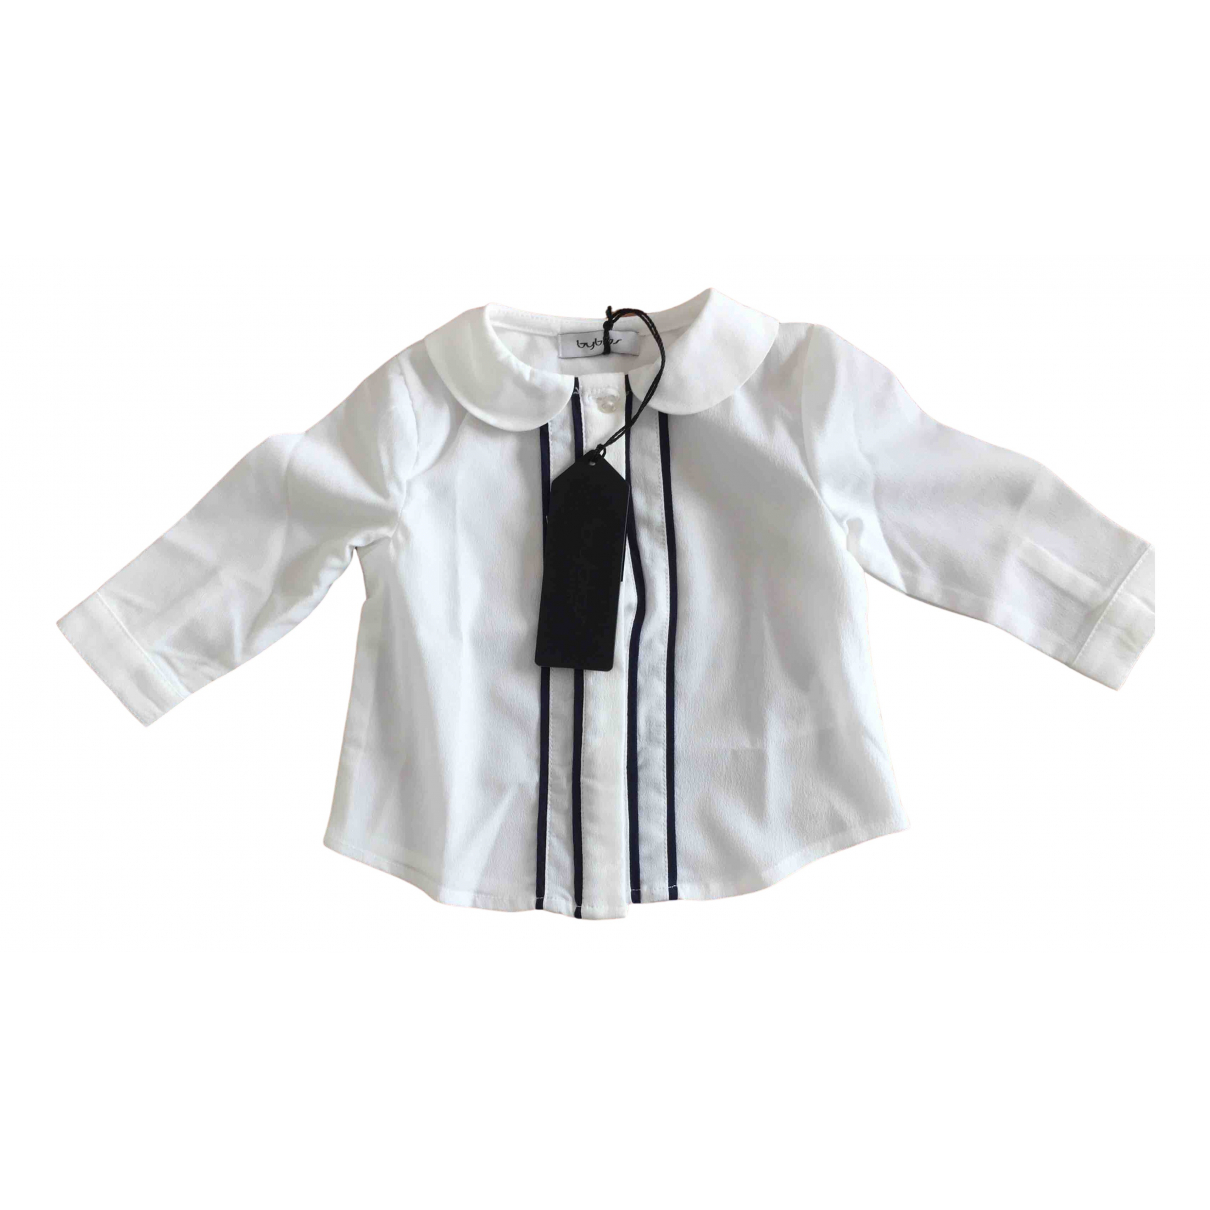 Byblos N White  top for Kids 6 months - until 26.5 inches UK